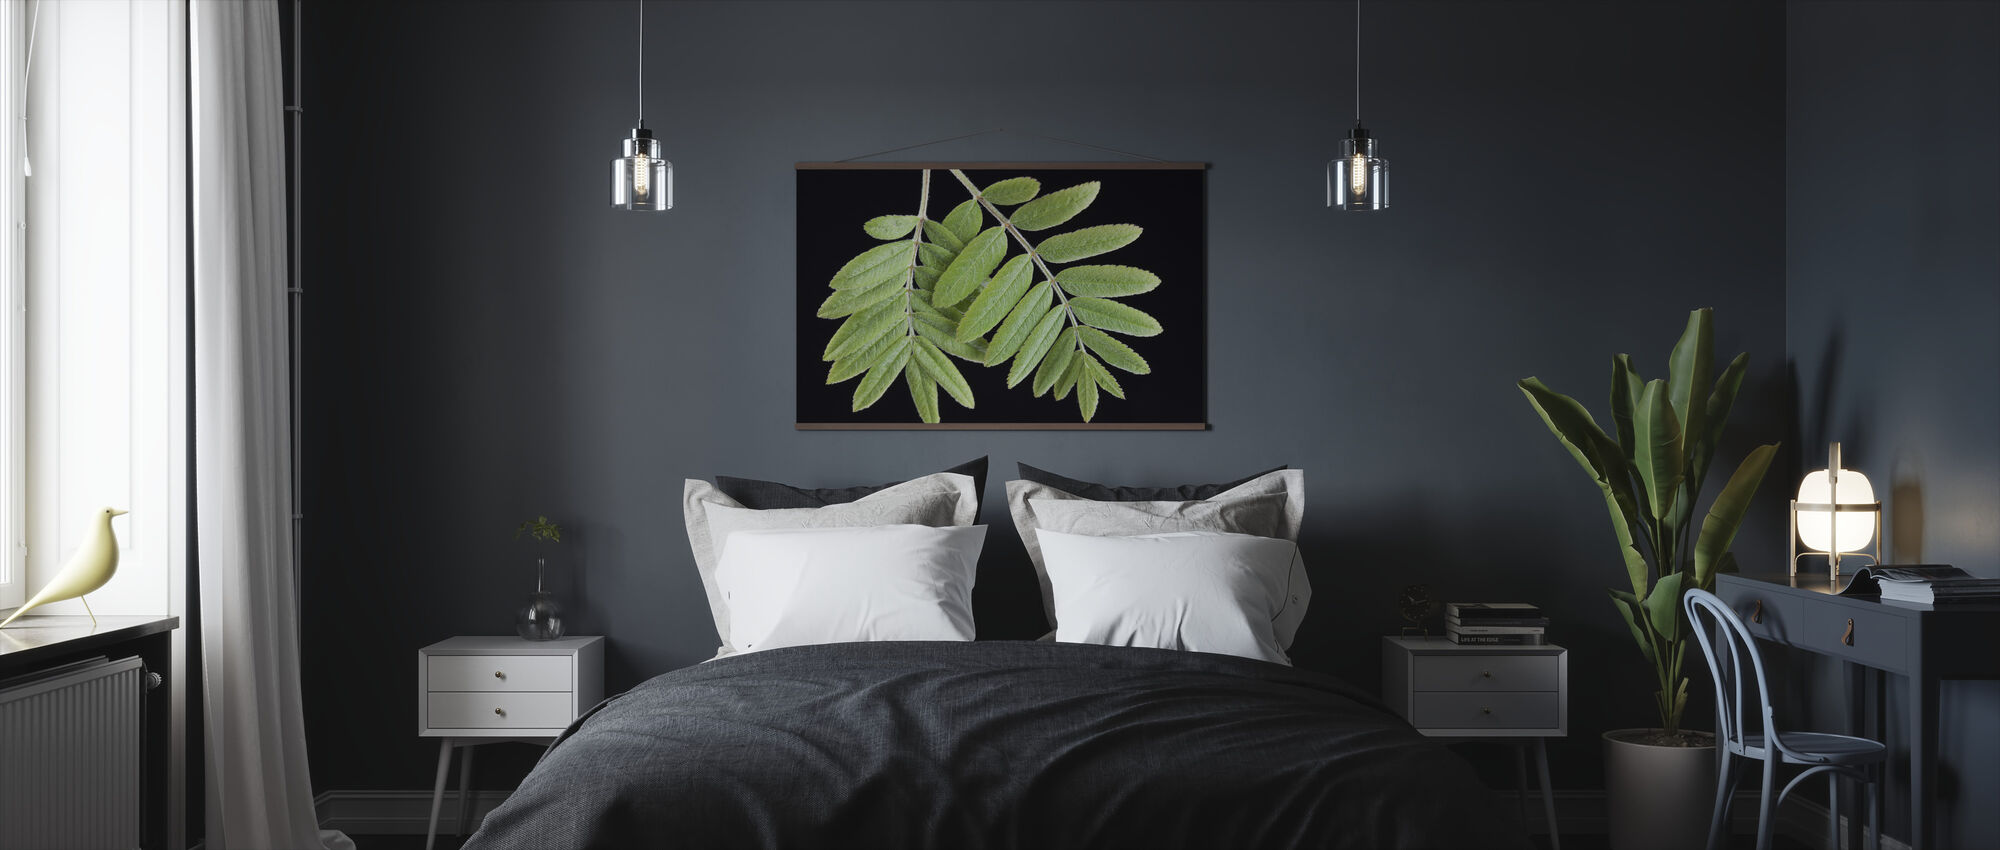 Green Leaves on Black Background - Poster - Bedroom